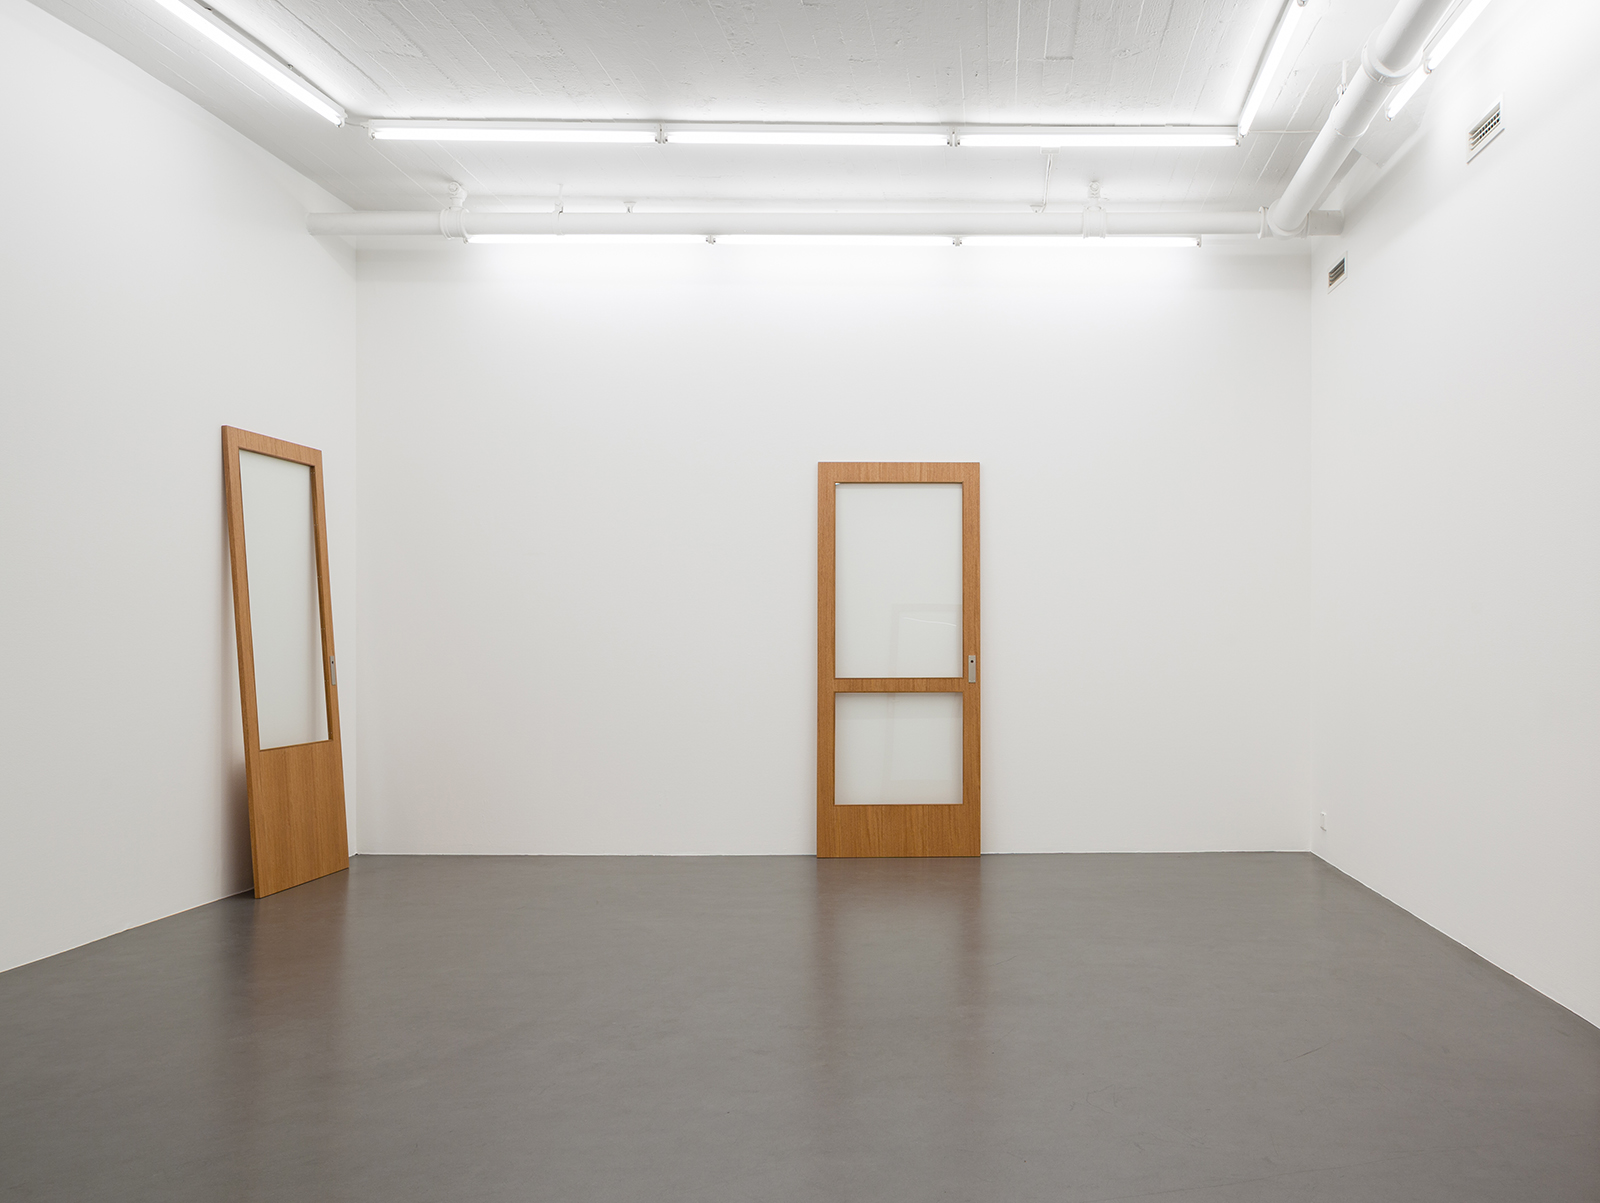 Karin Ohlin, Installation view, Galleri Flach 2013